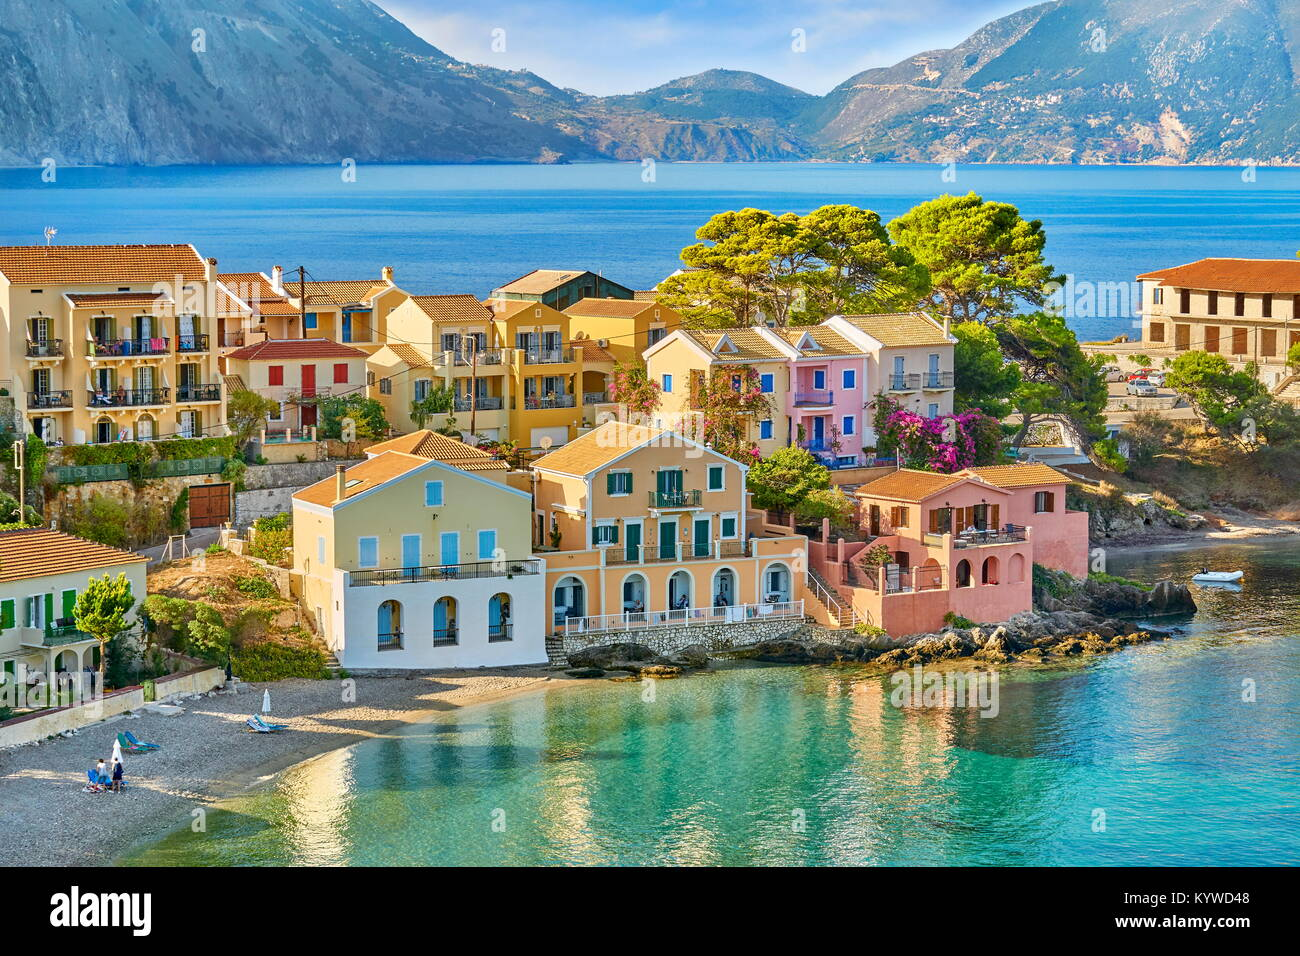 Colorful houses in the Assos village, Kefalonia Island, Greece - Stock Image